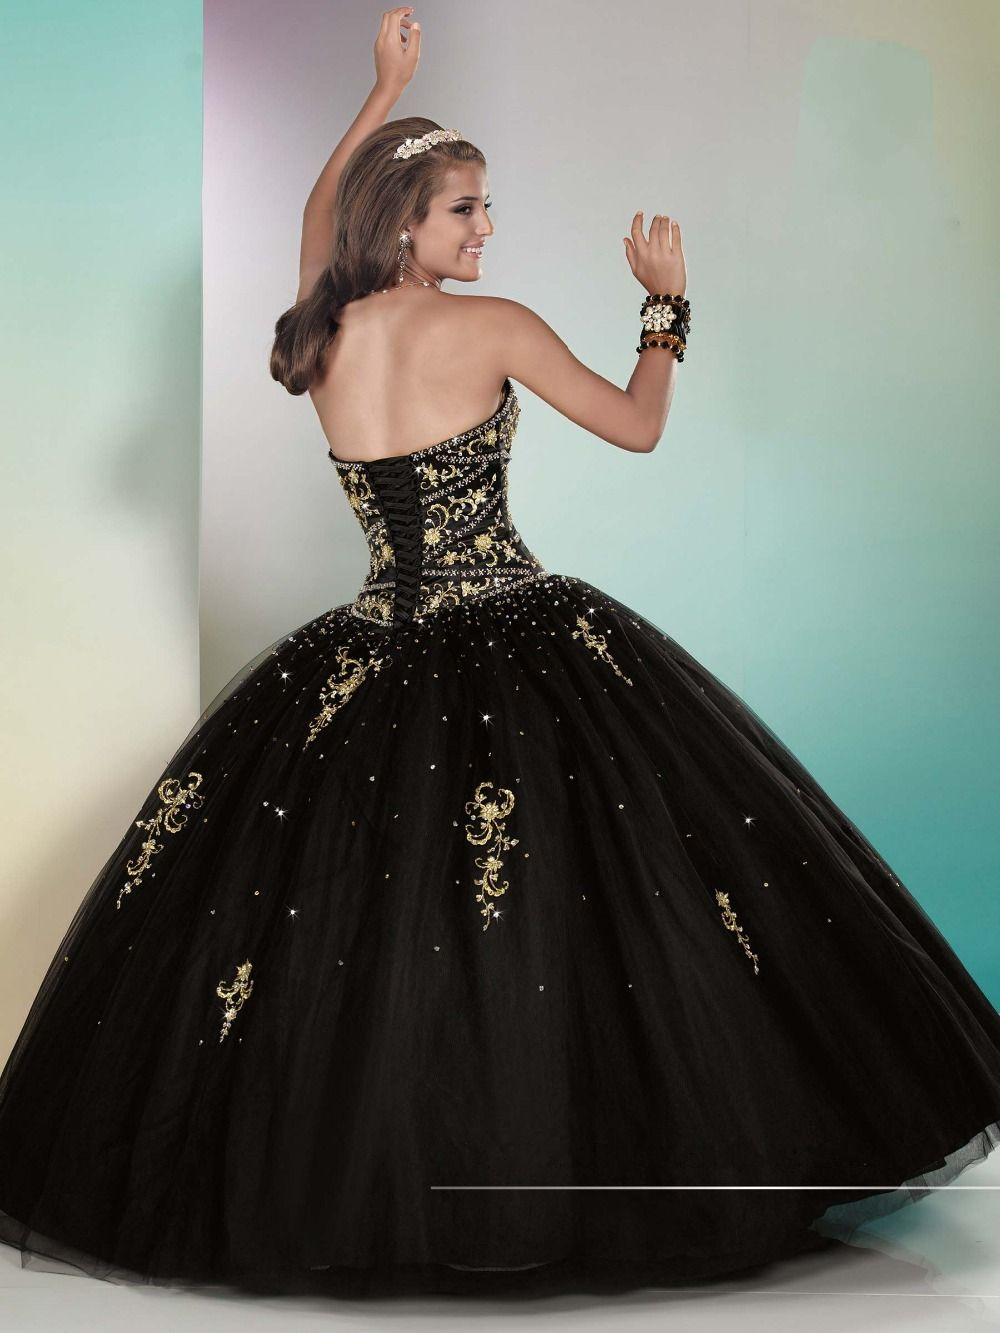 Image Result For Quinceanera Dress Black And Gold White Ball Gowns Ball Gowns Ball Gowns Prom [ 1333 x 1000 Pixel ]